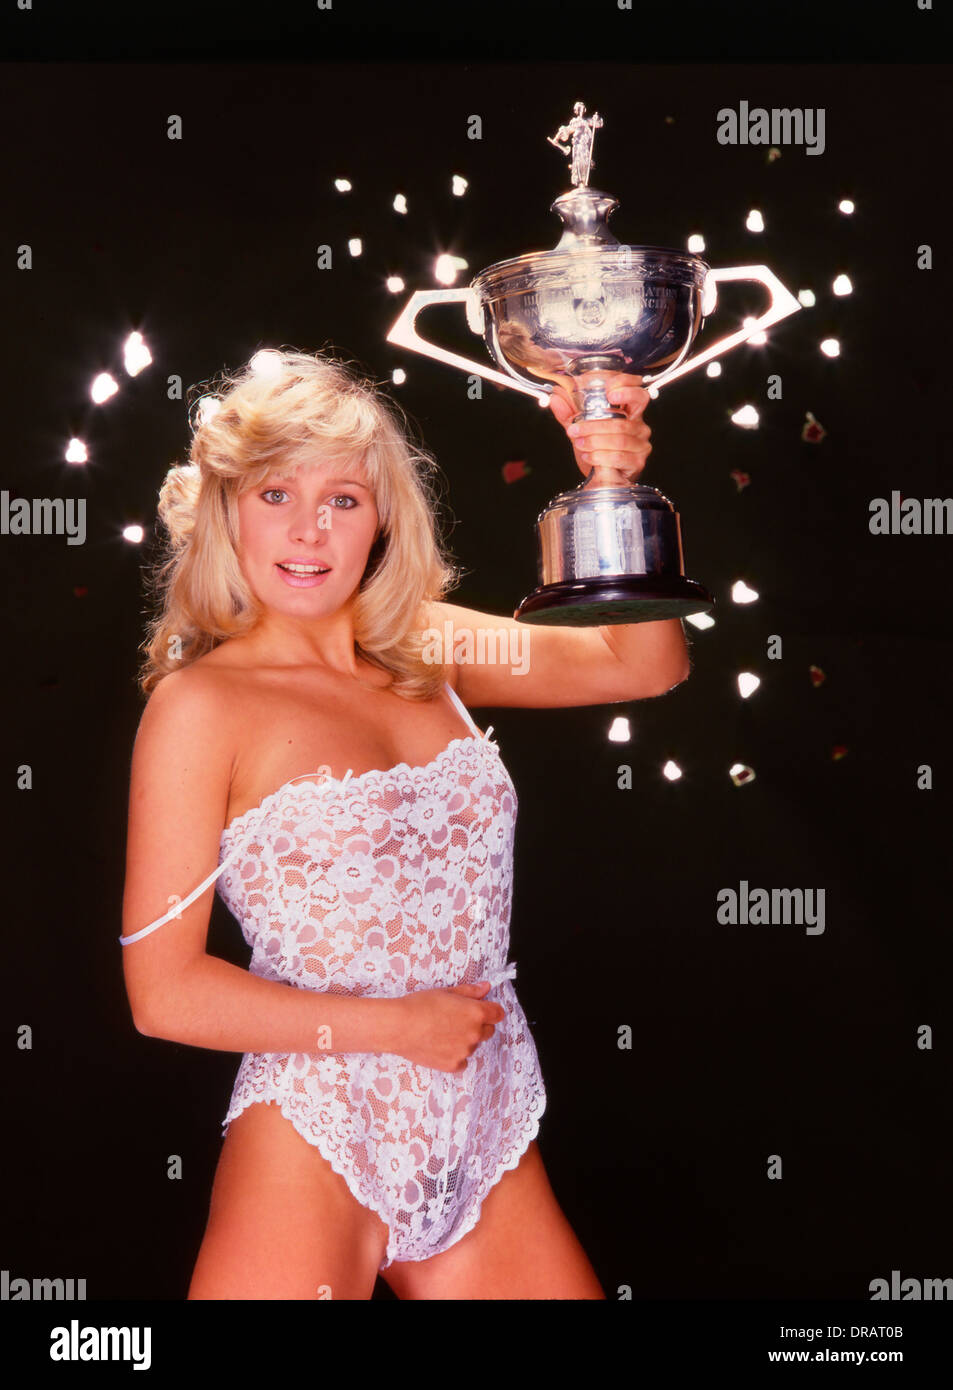 Page 3 Girl With The Embassy World Snooker Trophy In The Early 1980s Stock Image